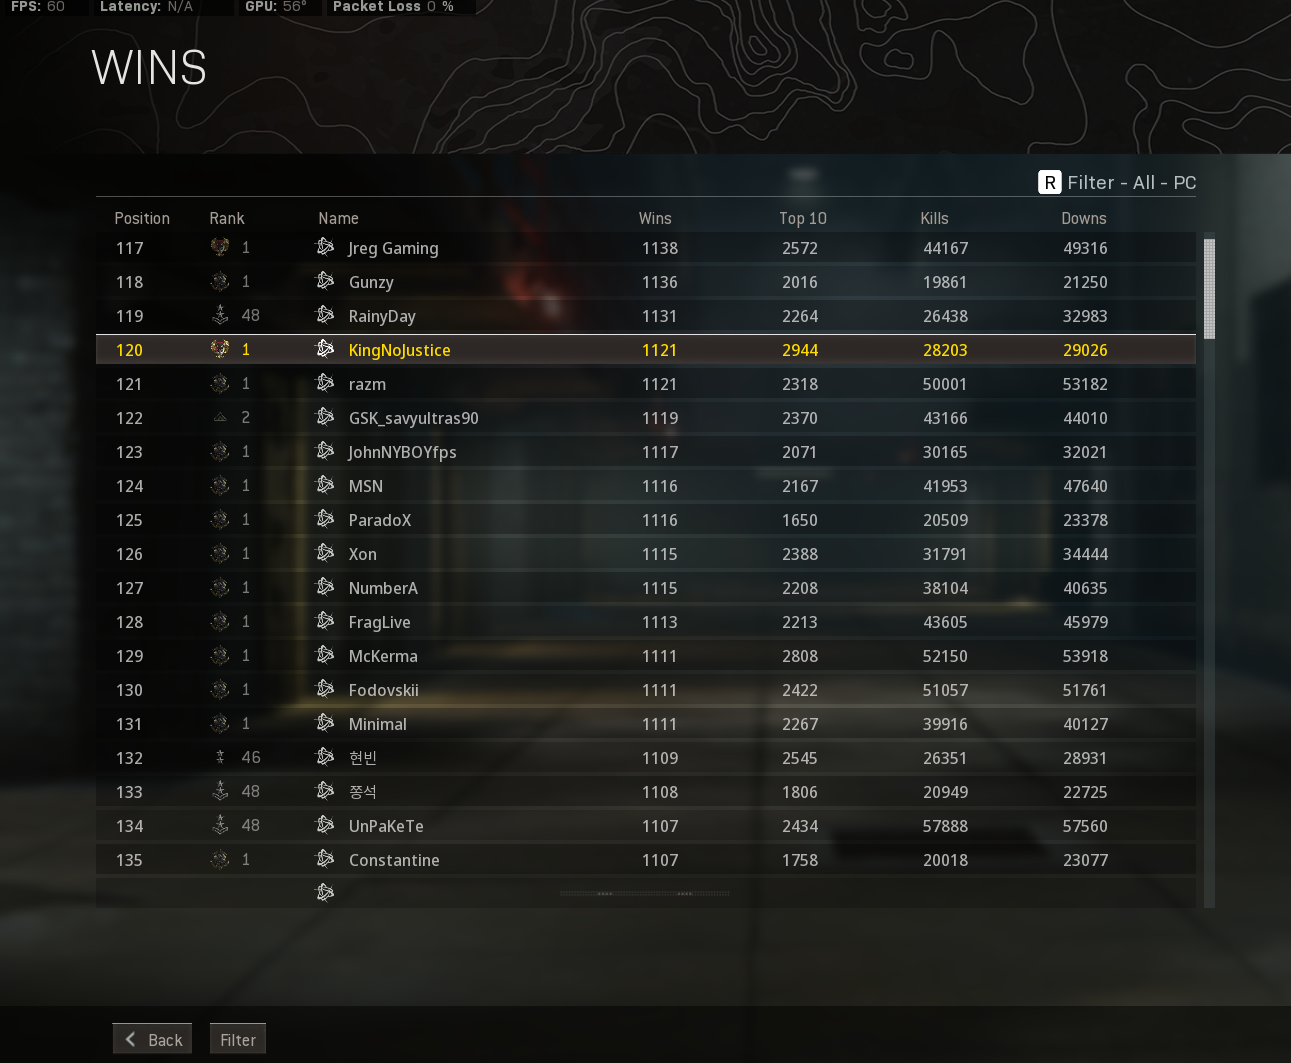 I will get you warzone wins and coach you I have 1100 wins